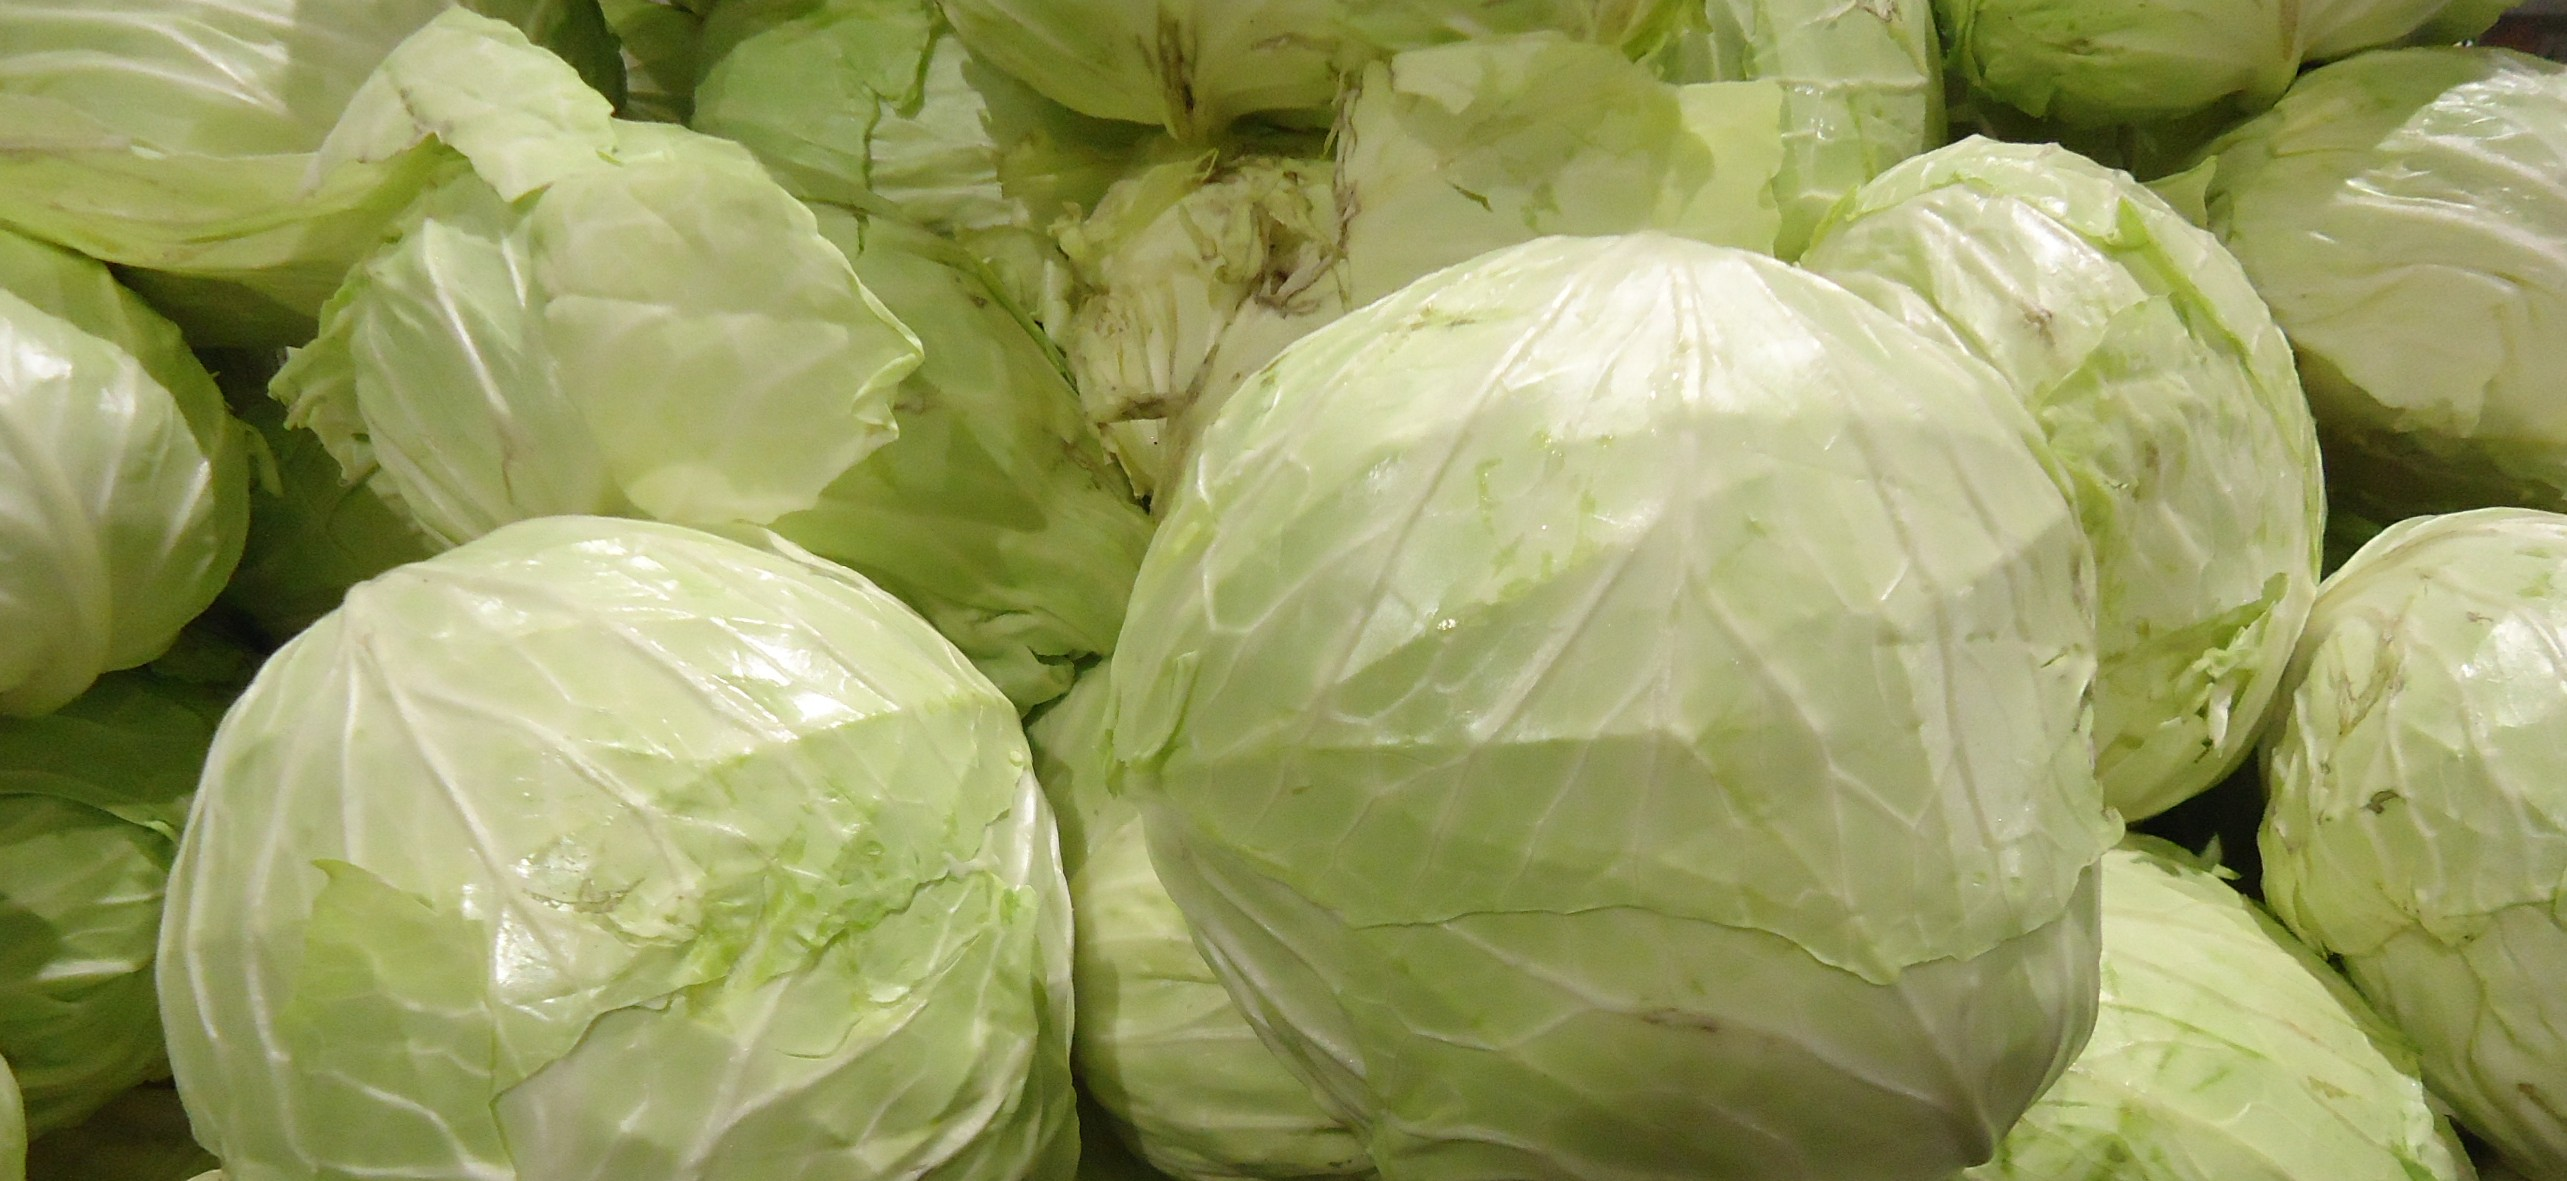 White cabbages at Asian supermarket in New Jersey